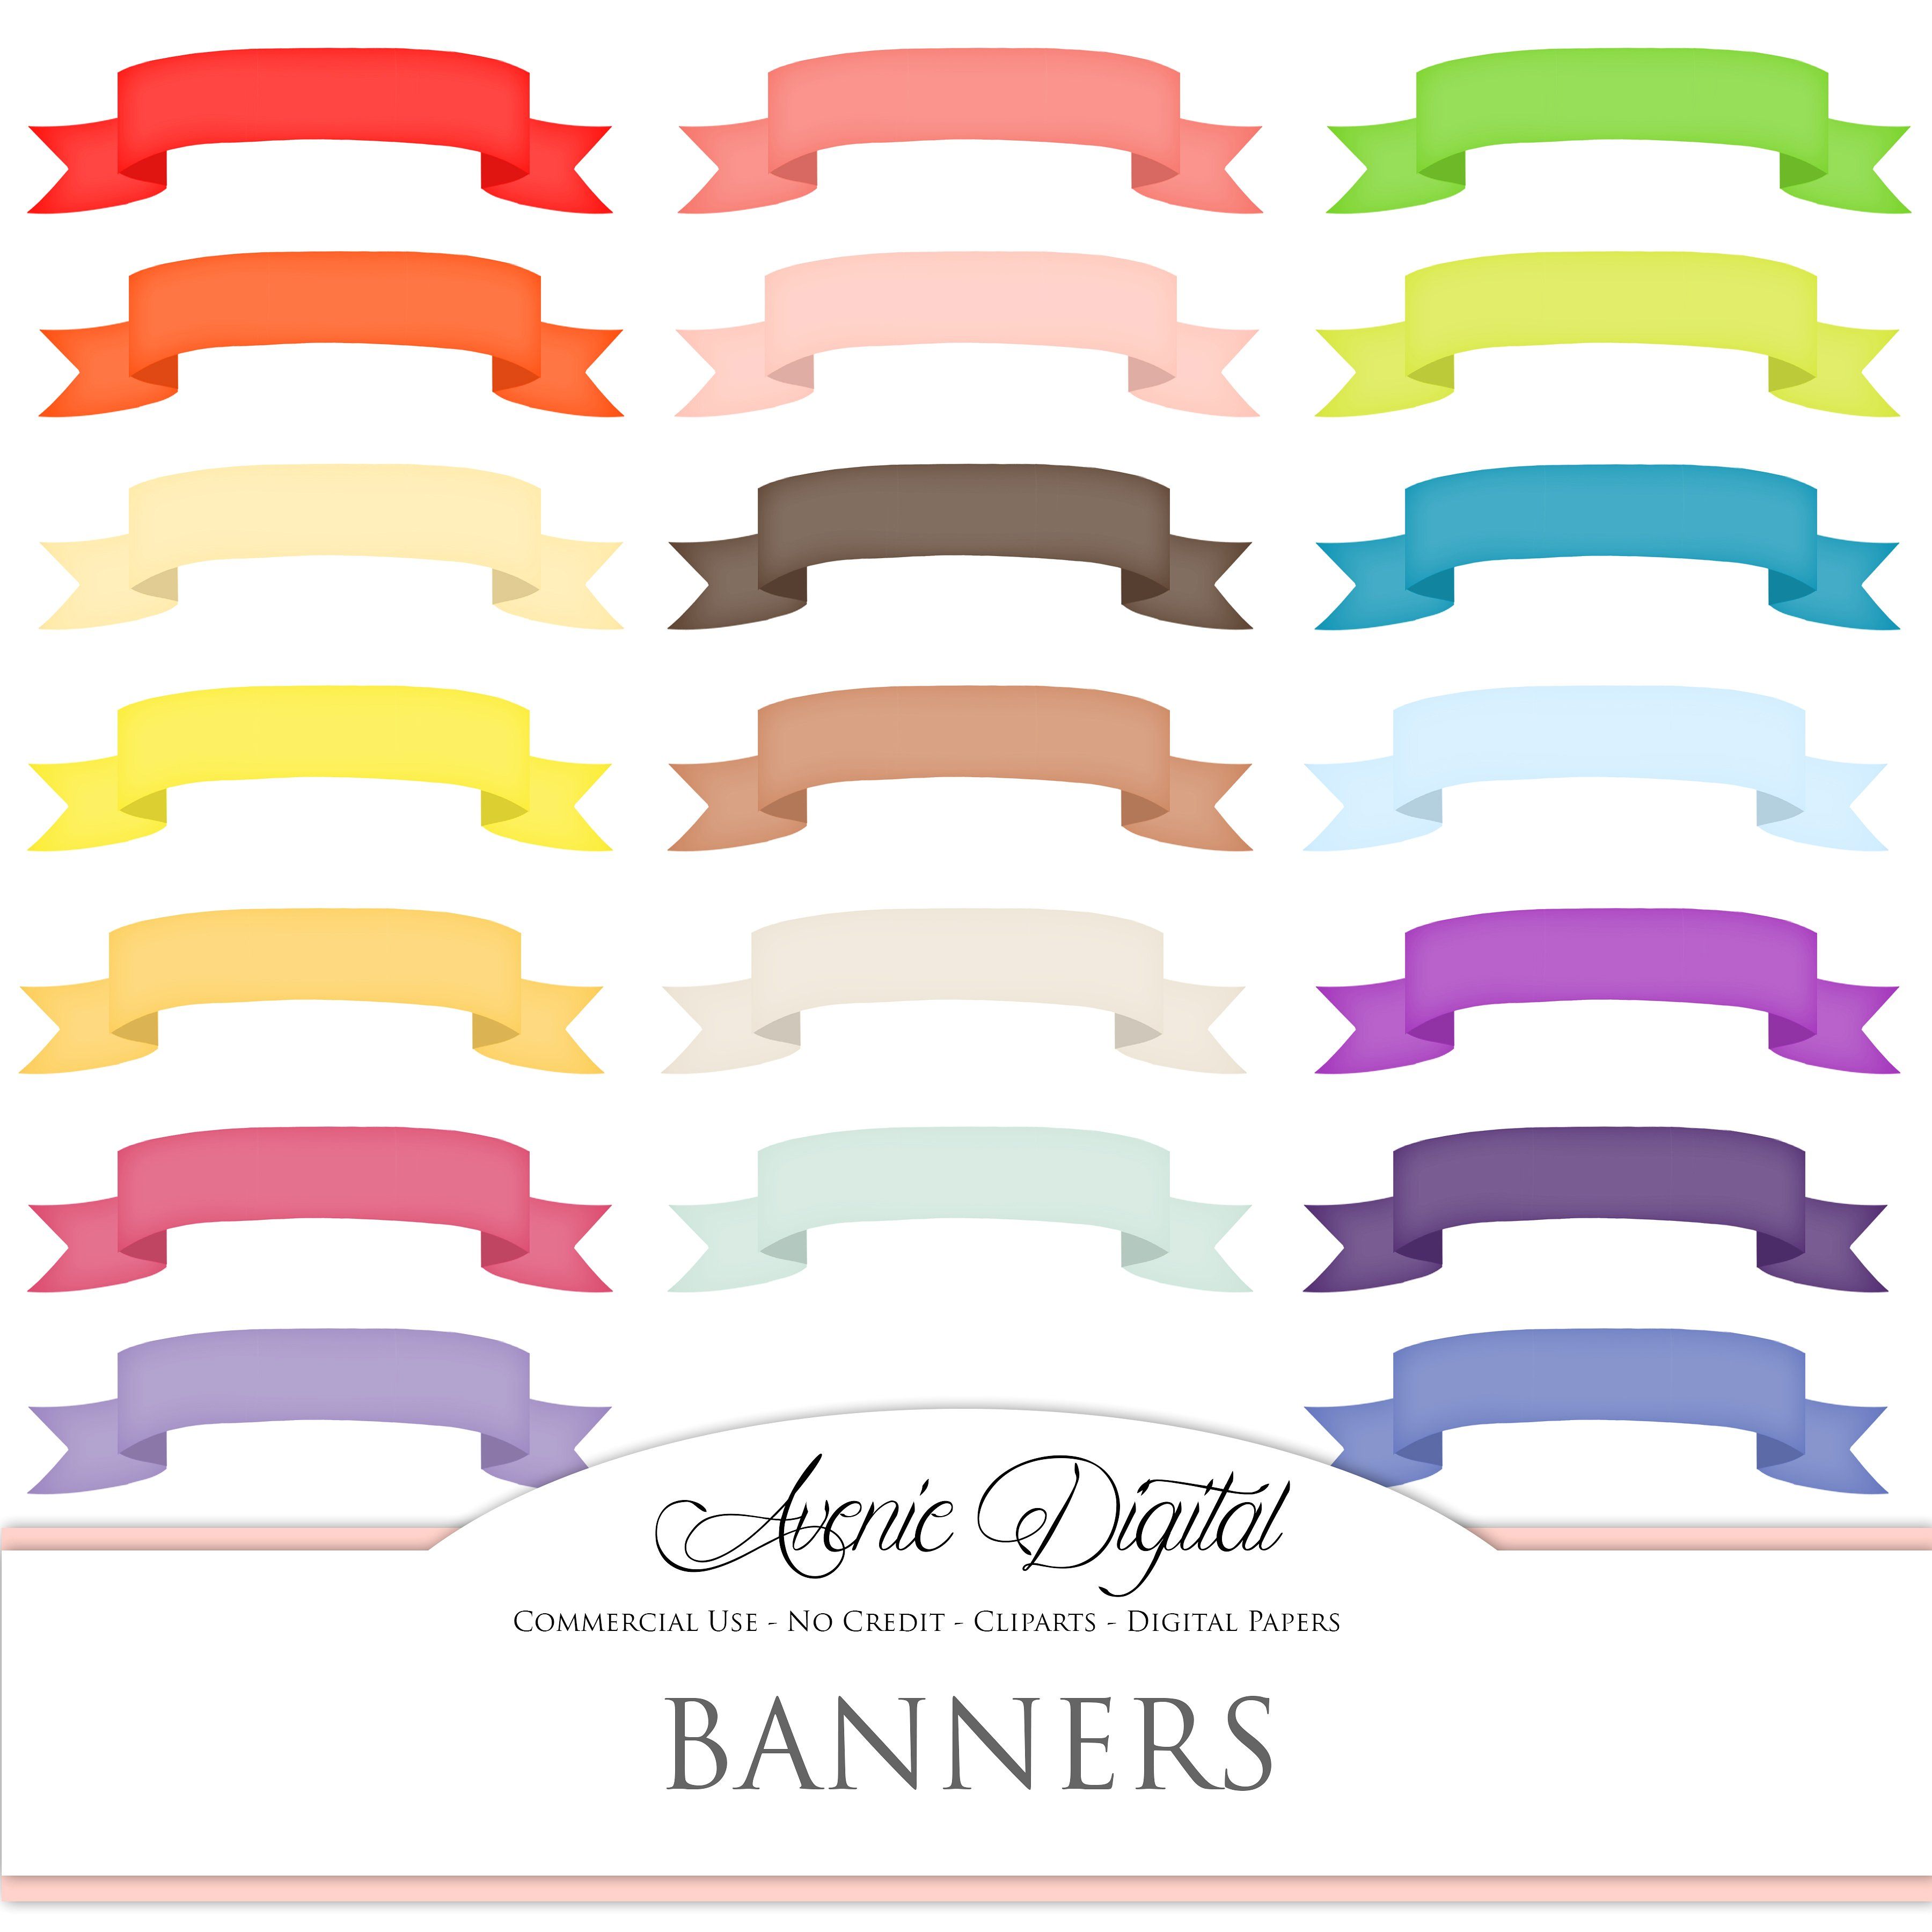 Banners clipart ribbon. Colorful banner illustrations creative